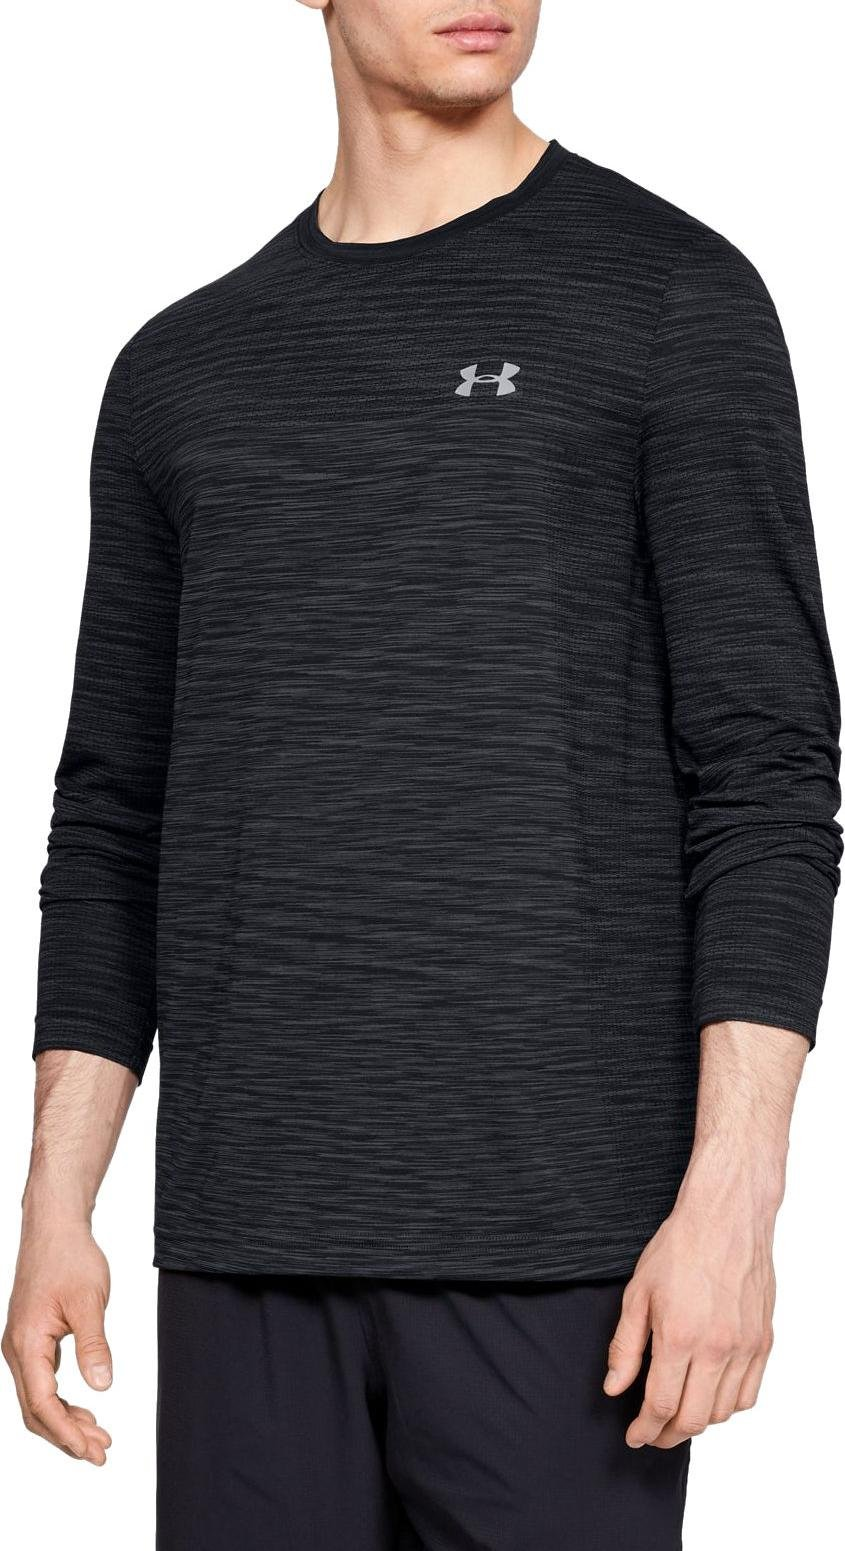 Langarm-T-Shirt Under Armour Vanish Seamless LS